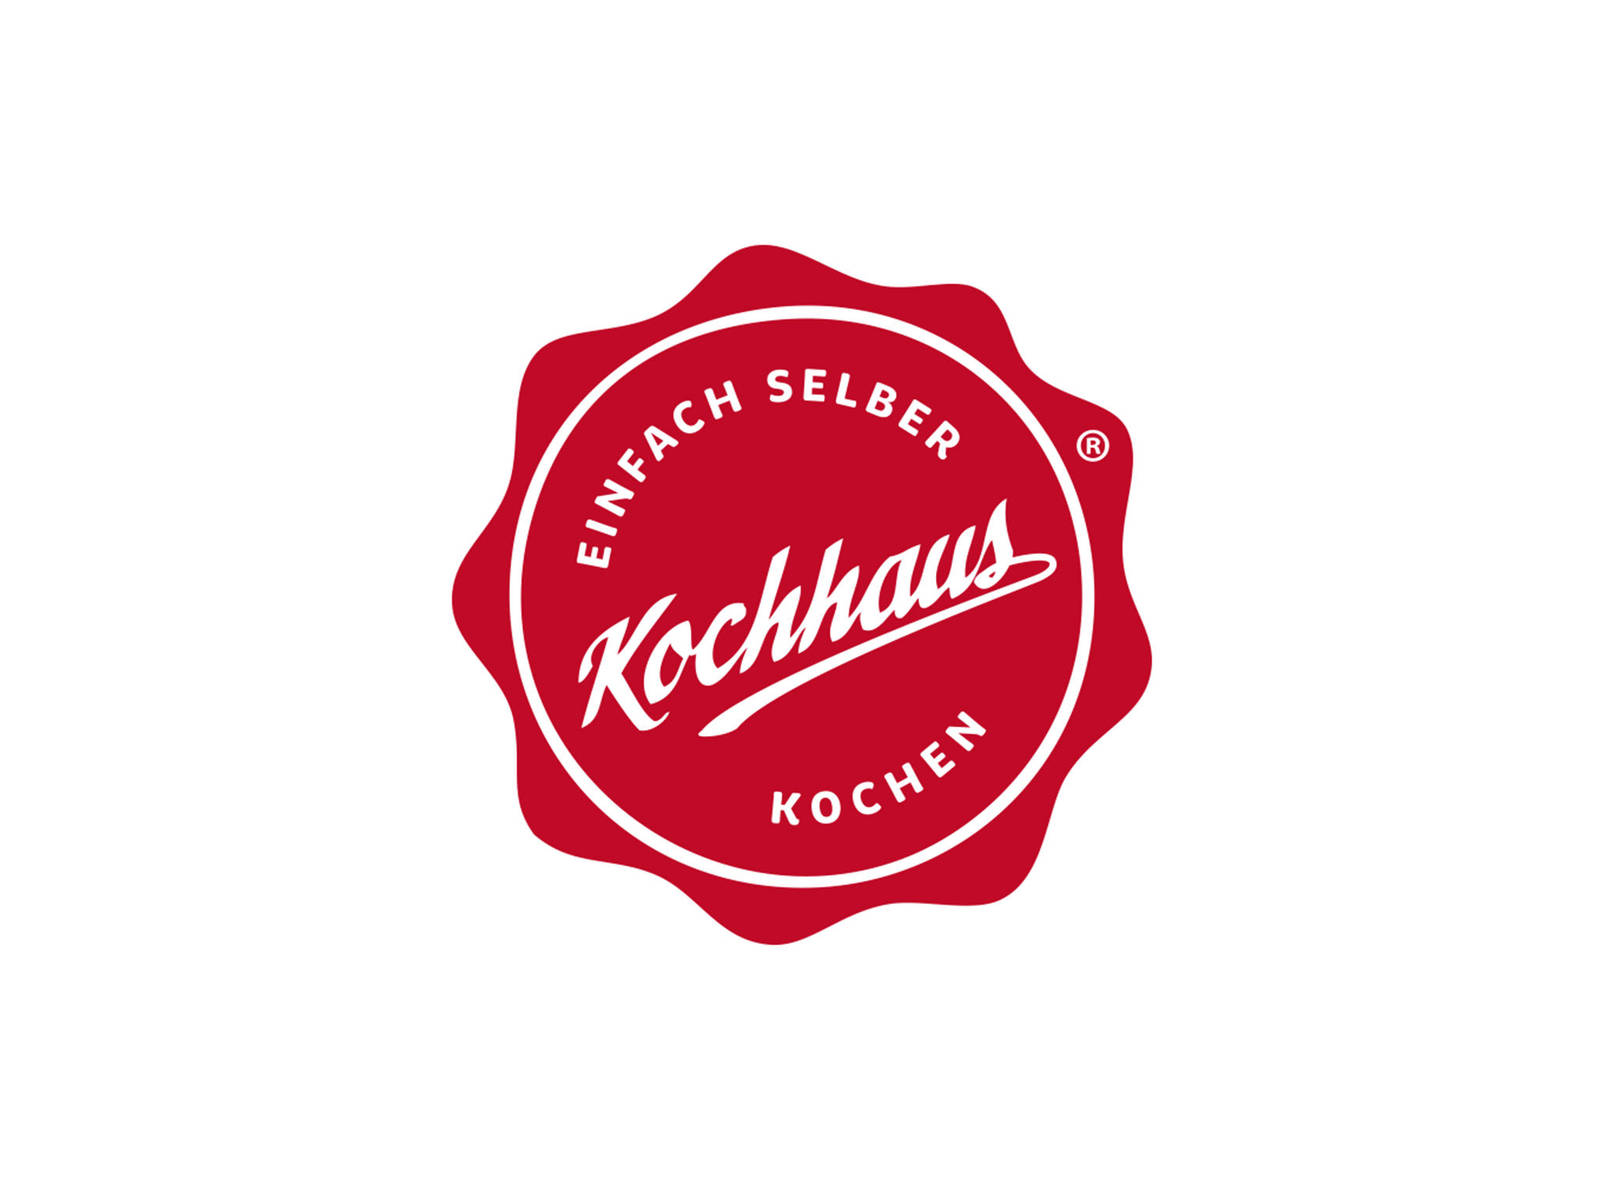 Kochhaus wishes you happy cooking!